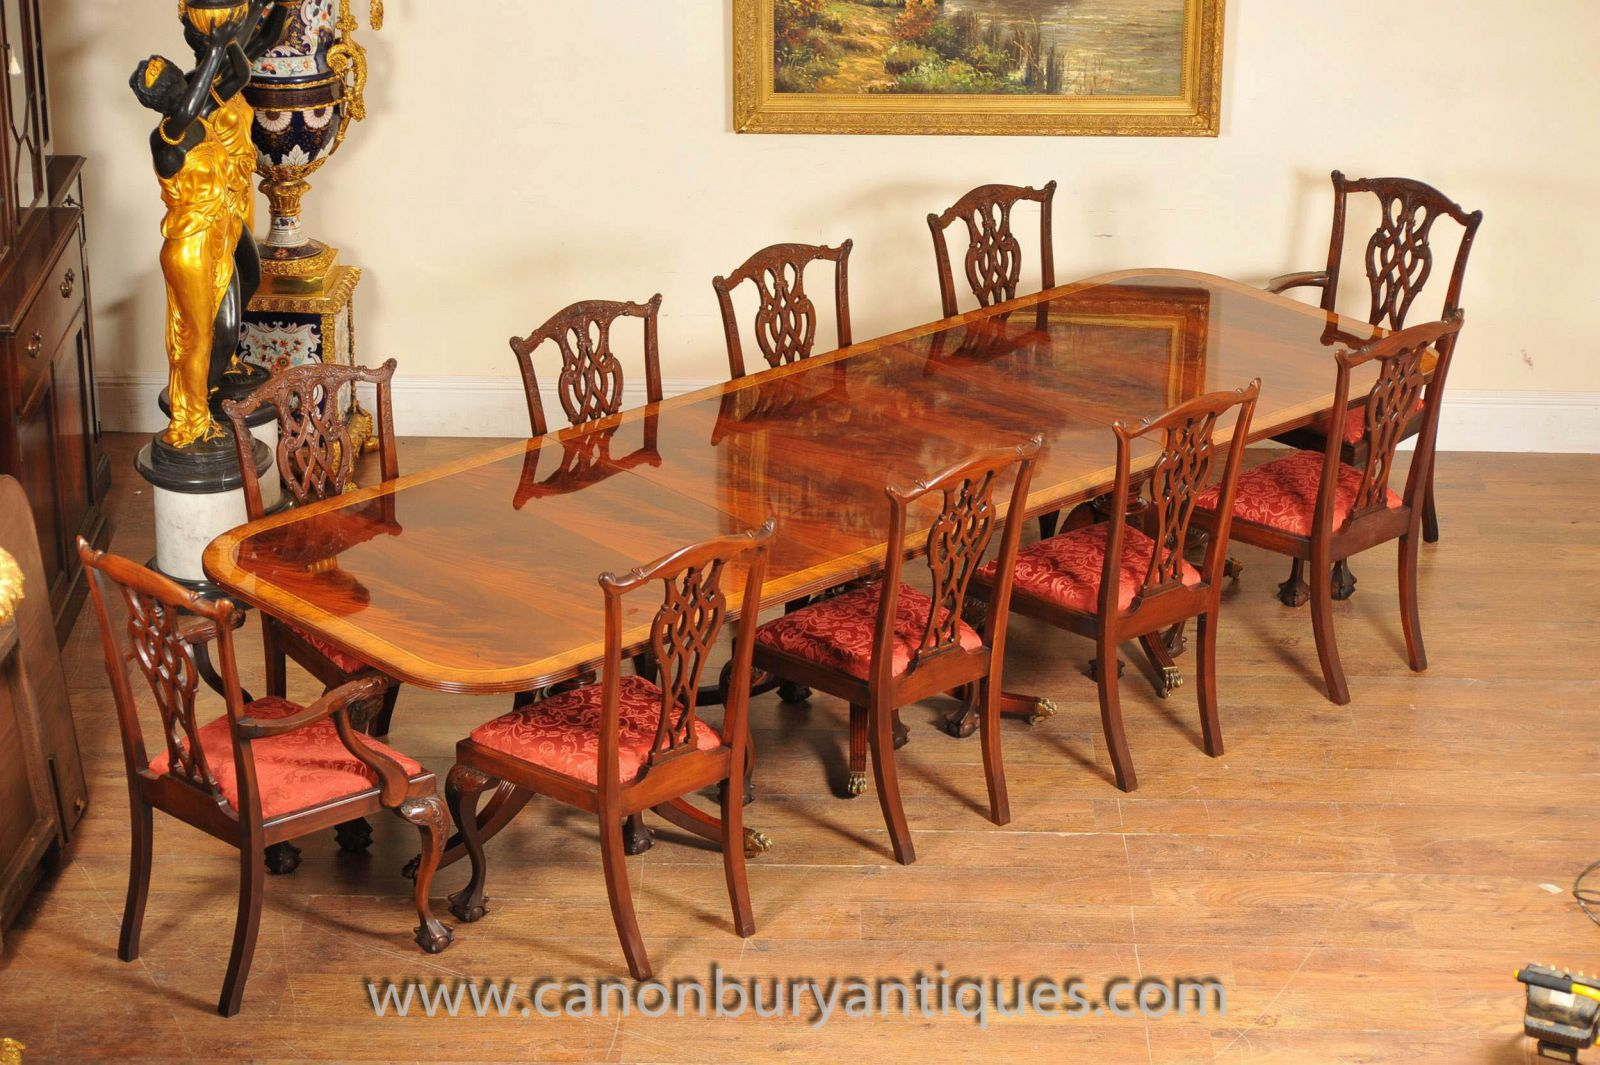 Regency Table and Set Chippendale Dining Chairs Set www_canonburyantiques_com (4)-2